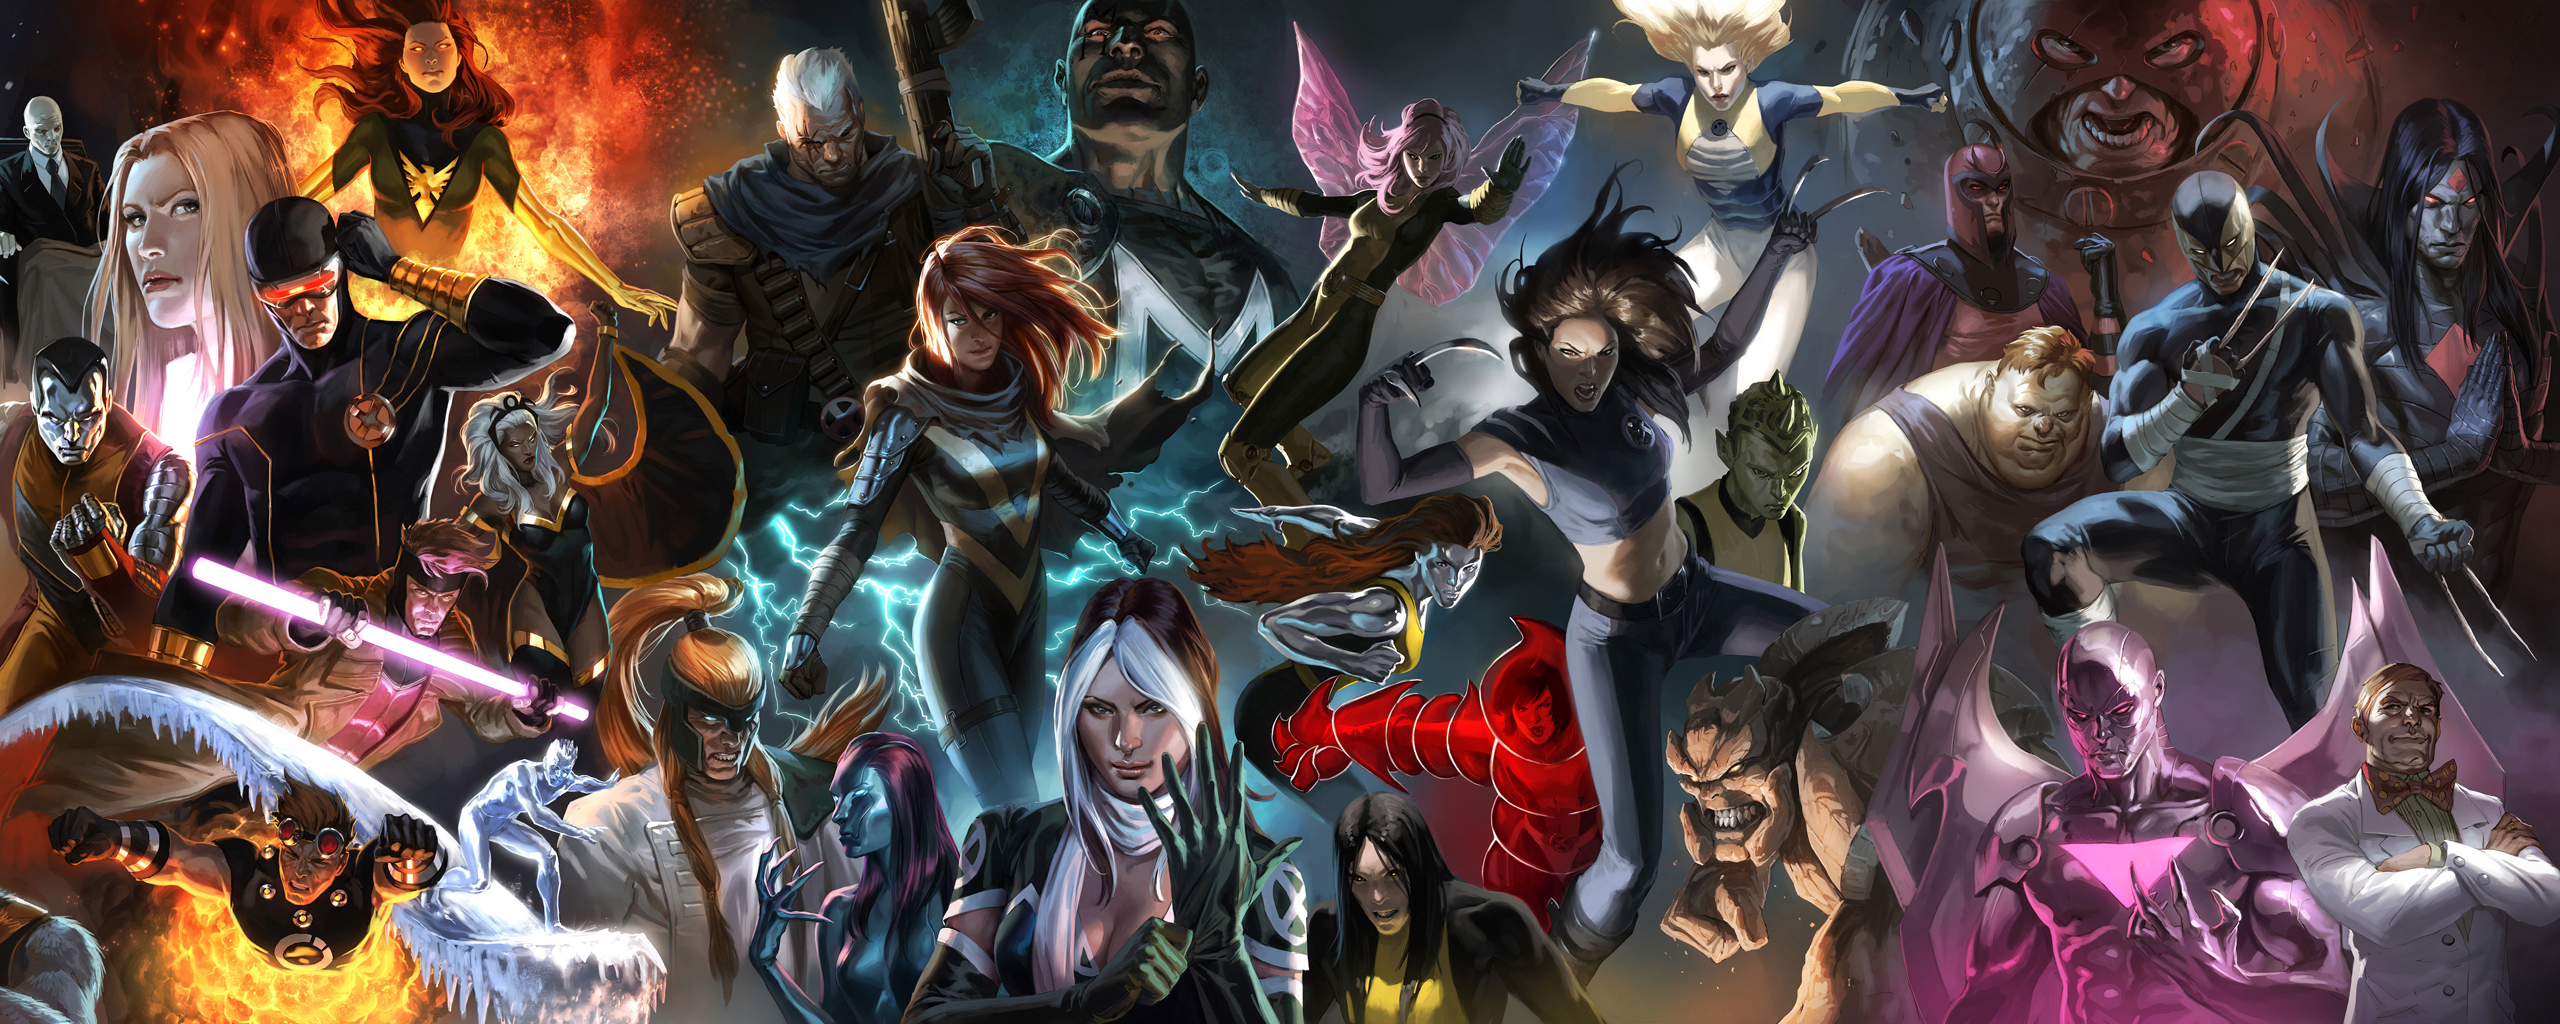 X-Men Wallpaper